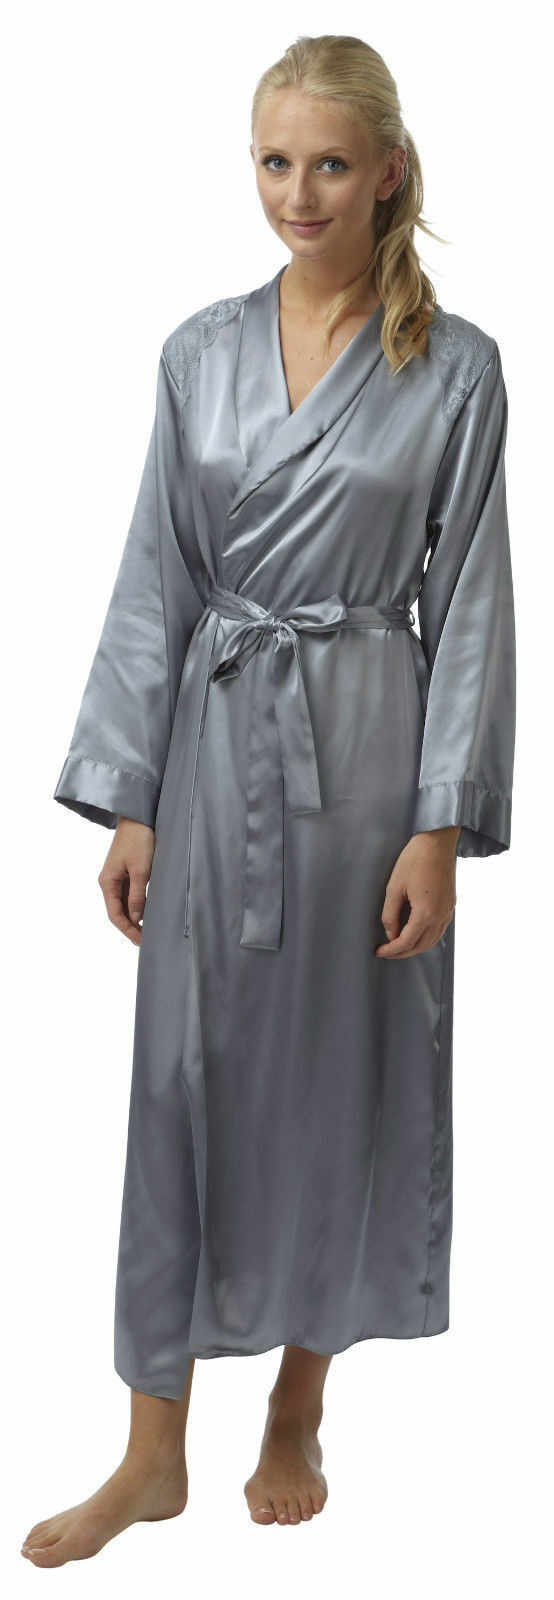 Magnificent Bhs Dressing Gowns Ladies Composition - Wedding and ...